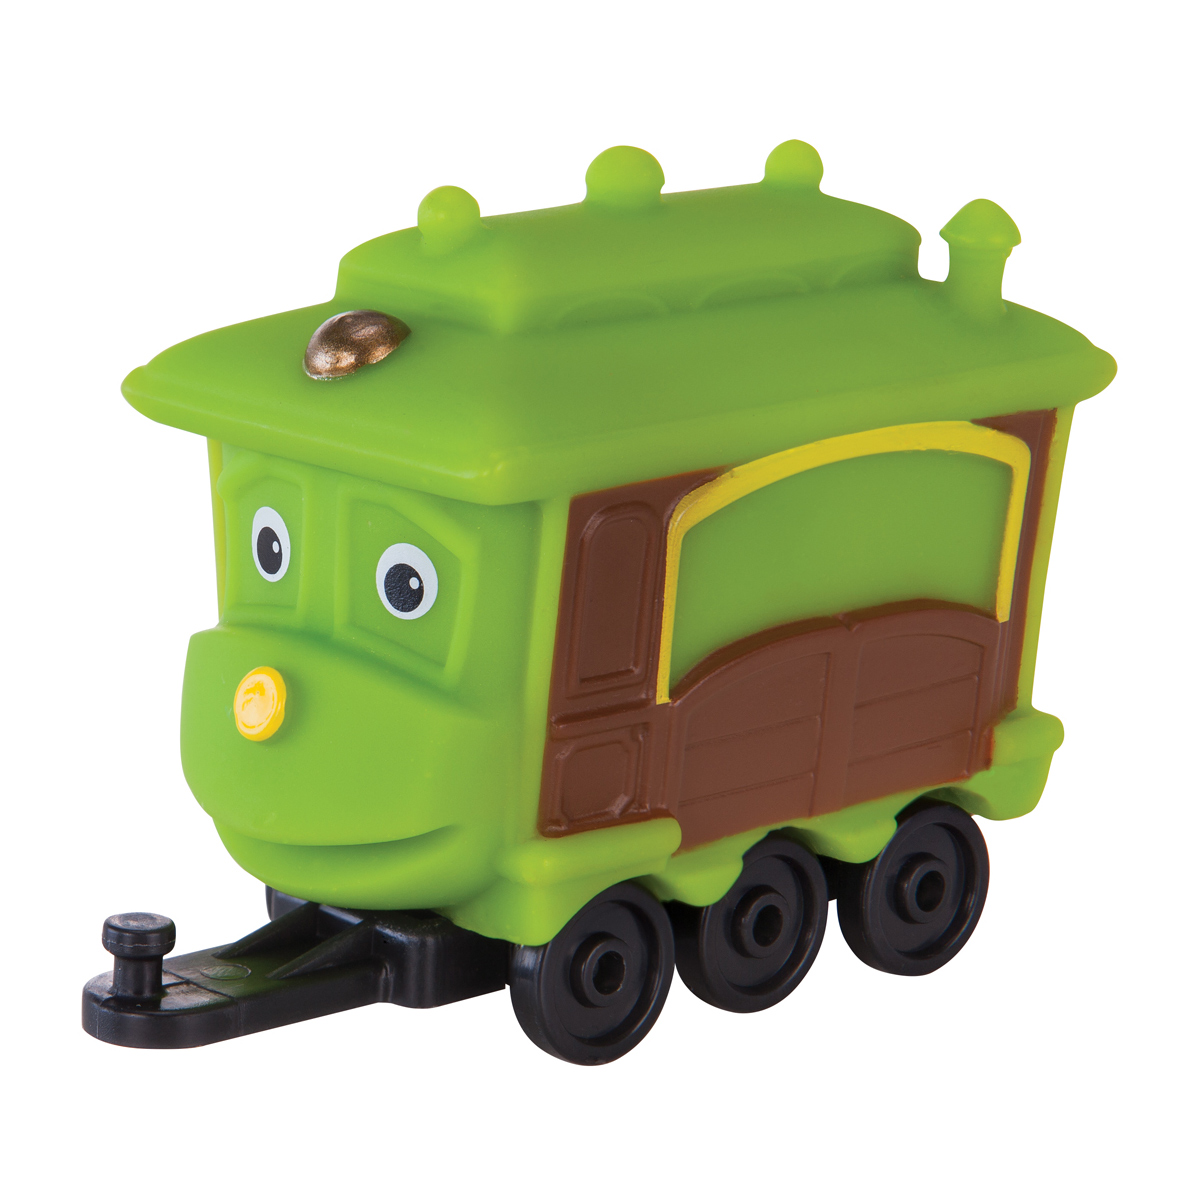 Locomotiva Chuggington Little Chuggers - Zephie